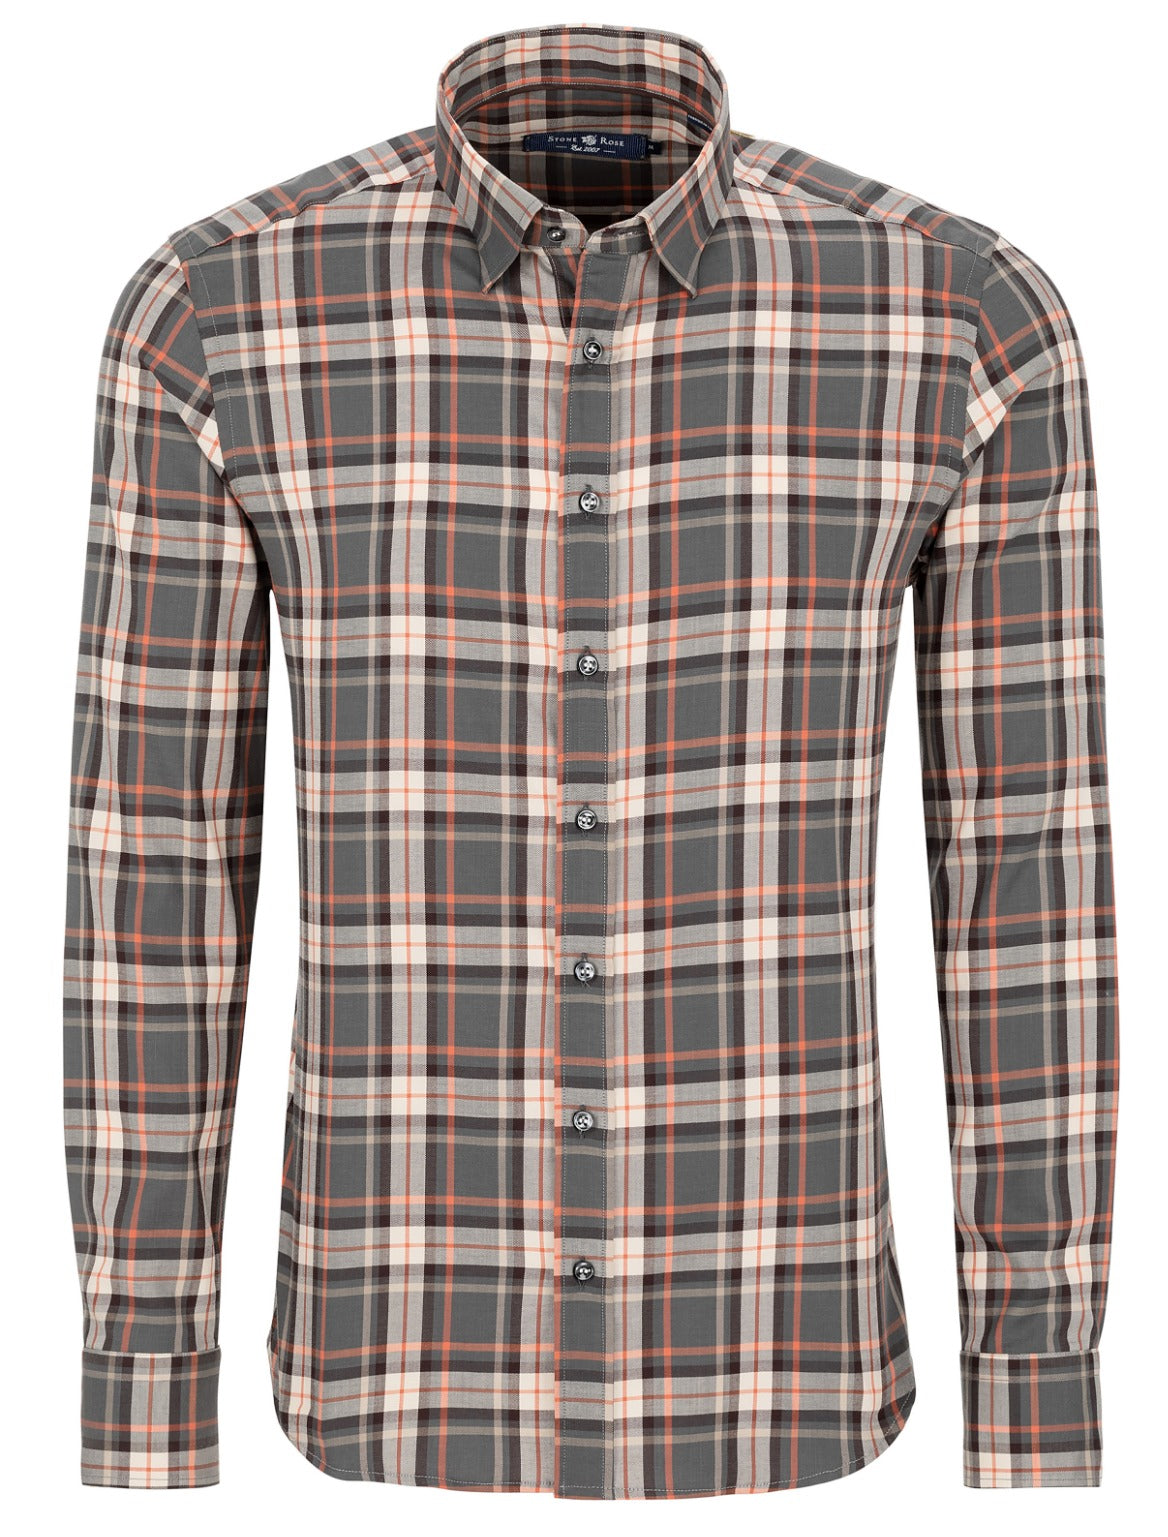 Charcoal Lyocell Plaid Long Sleeve Shirt